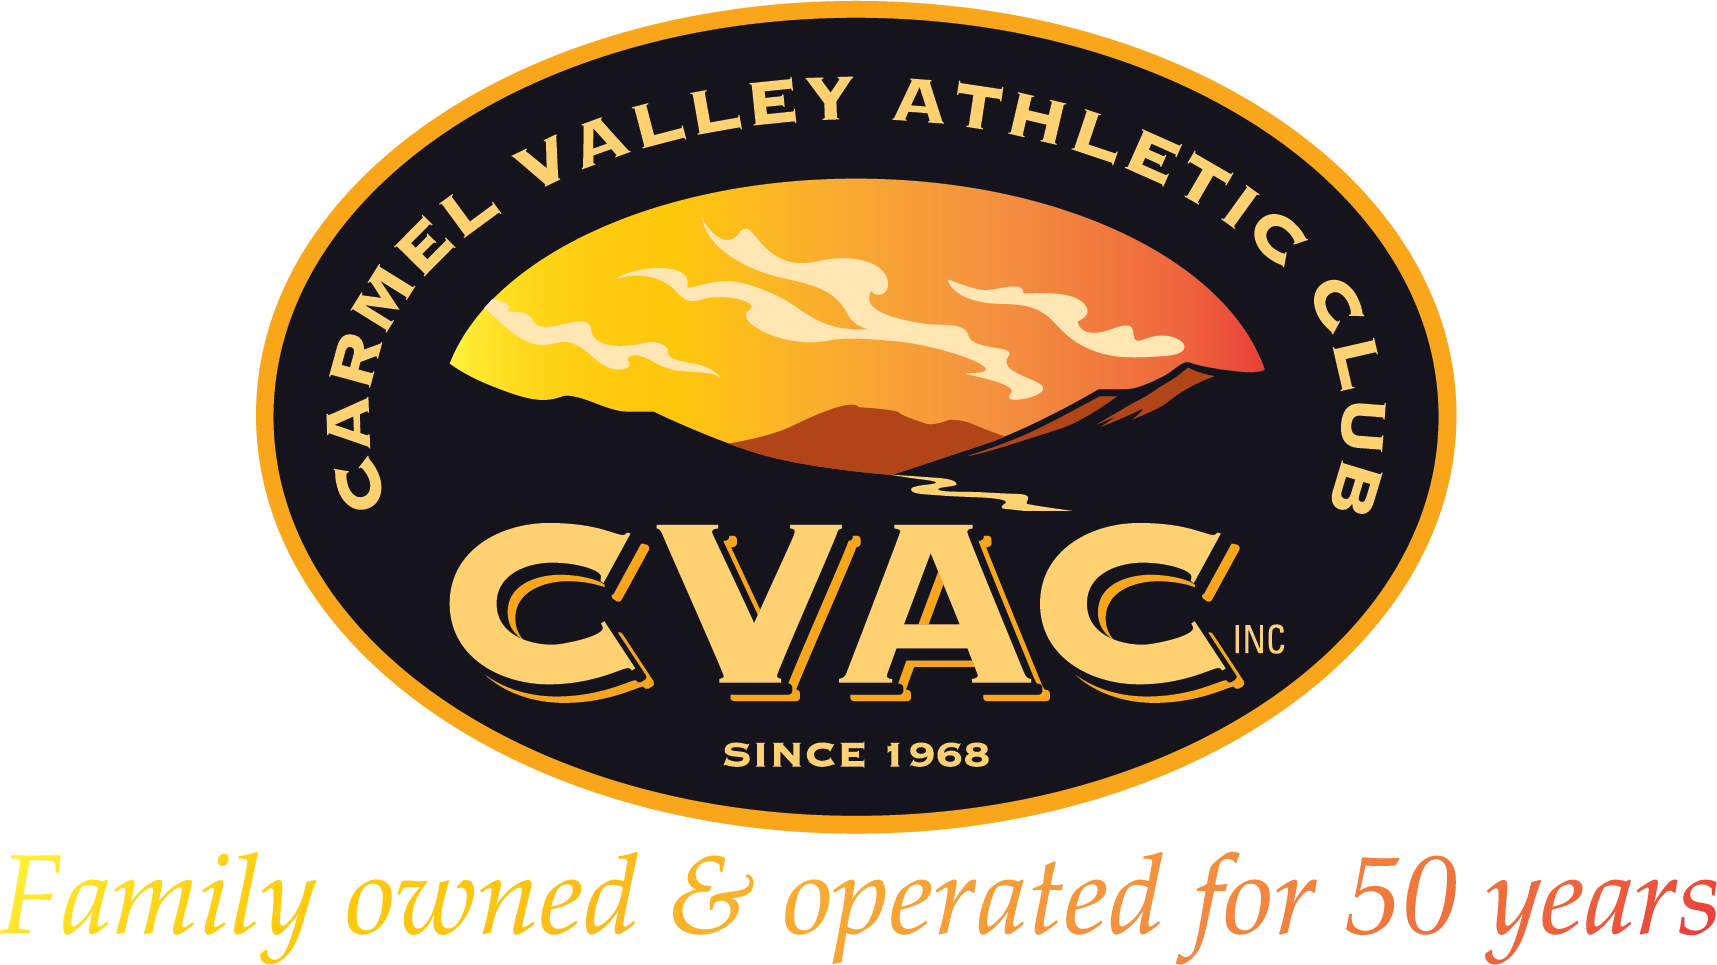 Carmel Valley Athletic Club